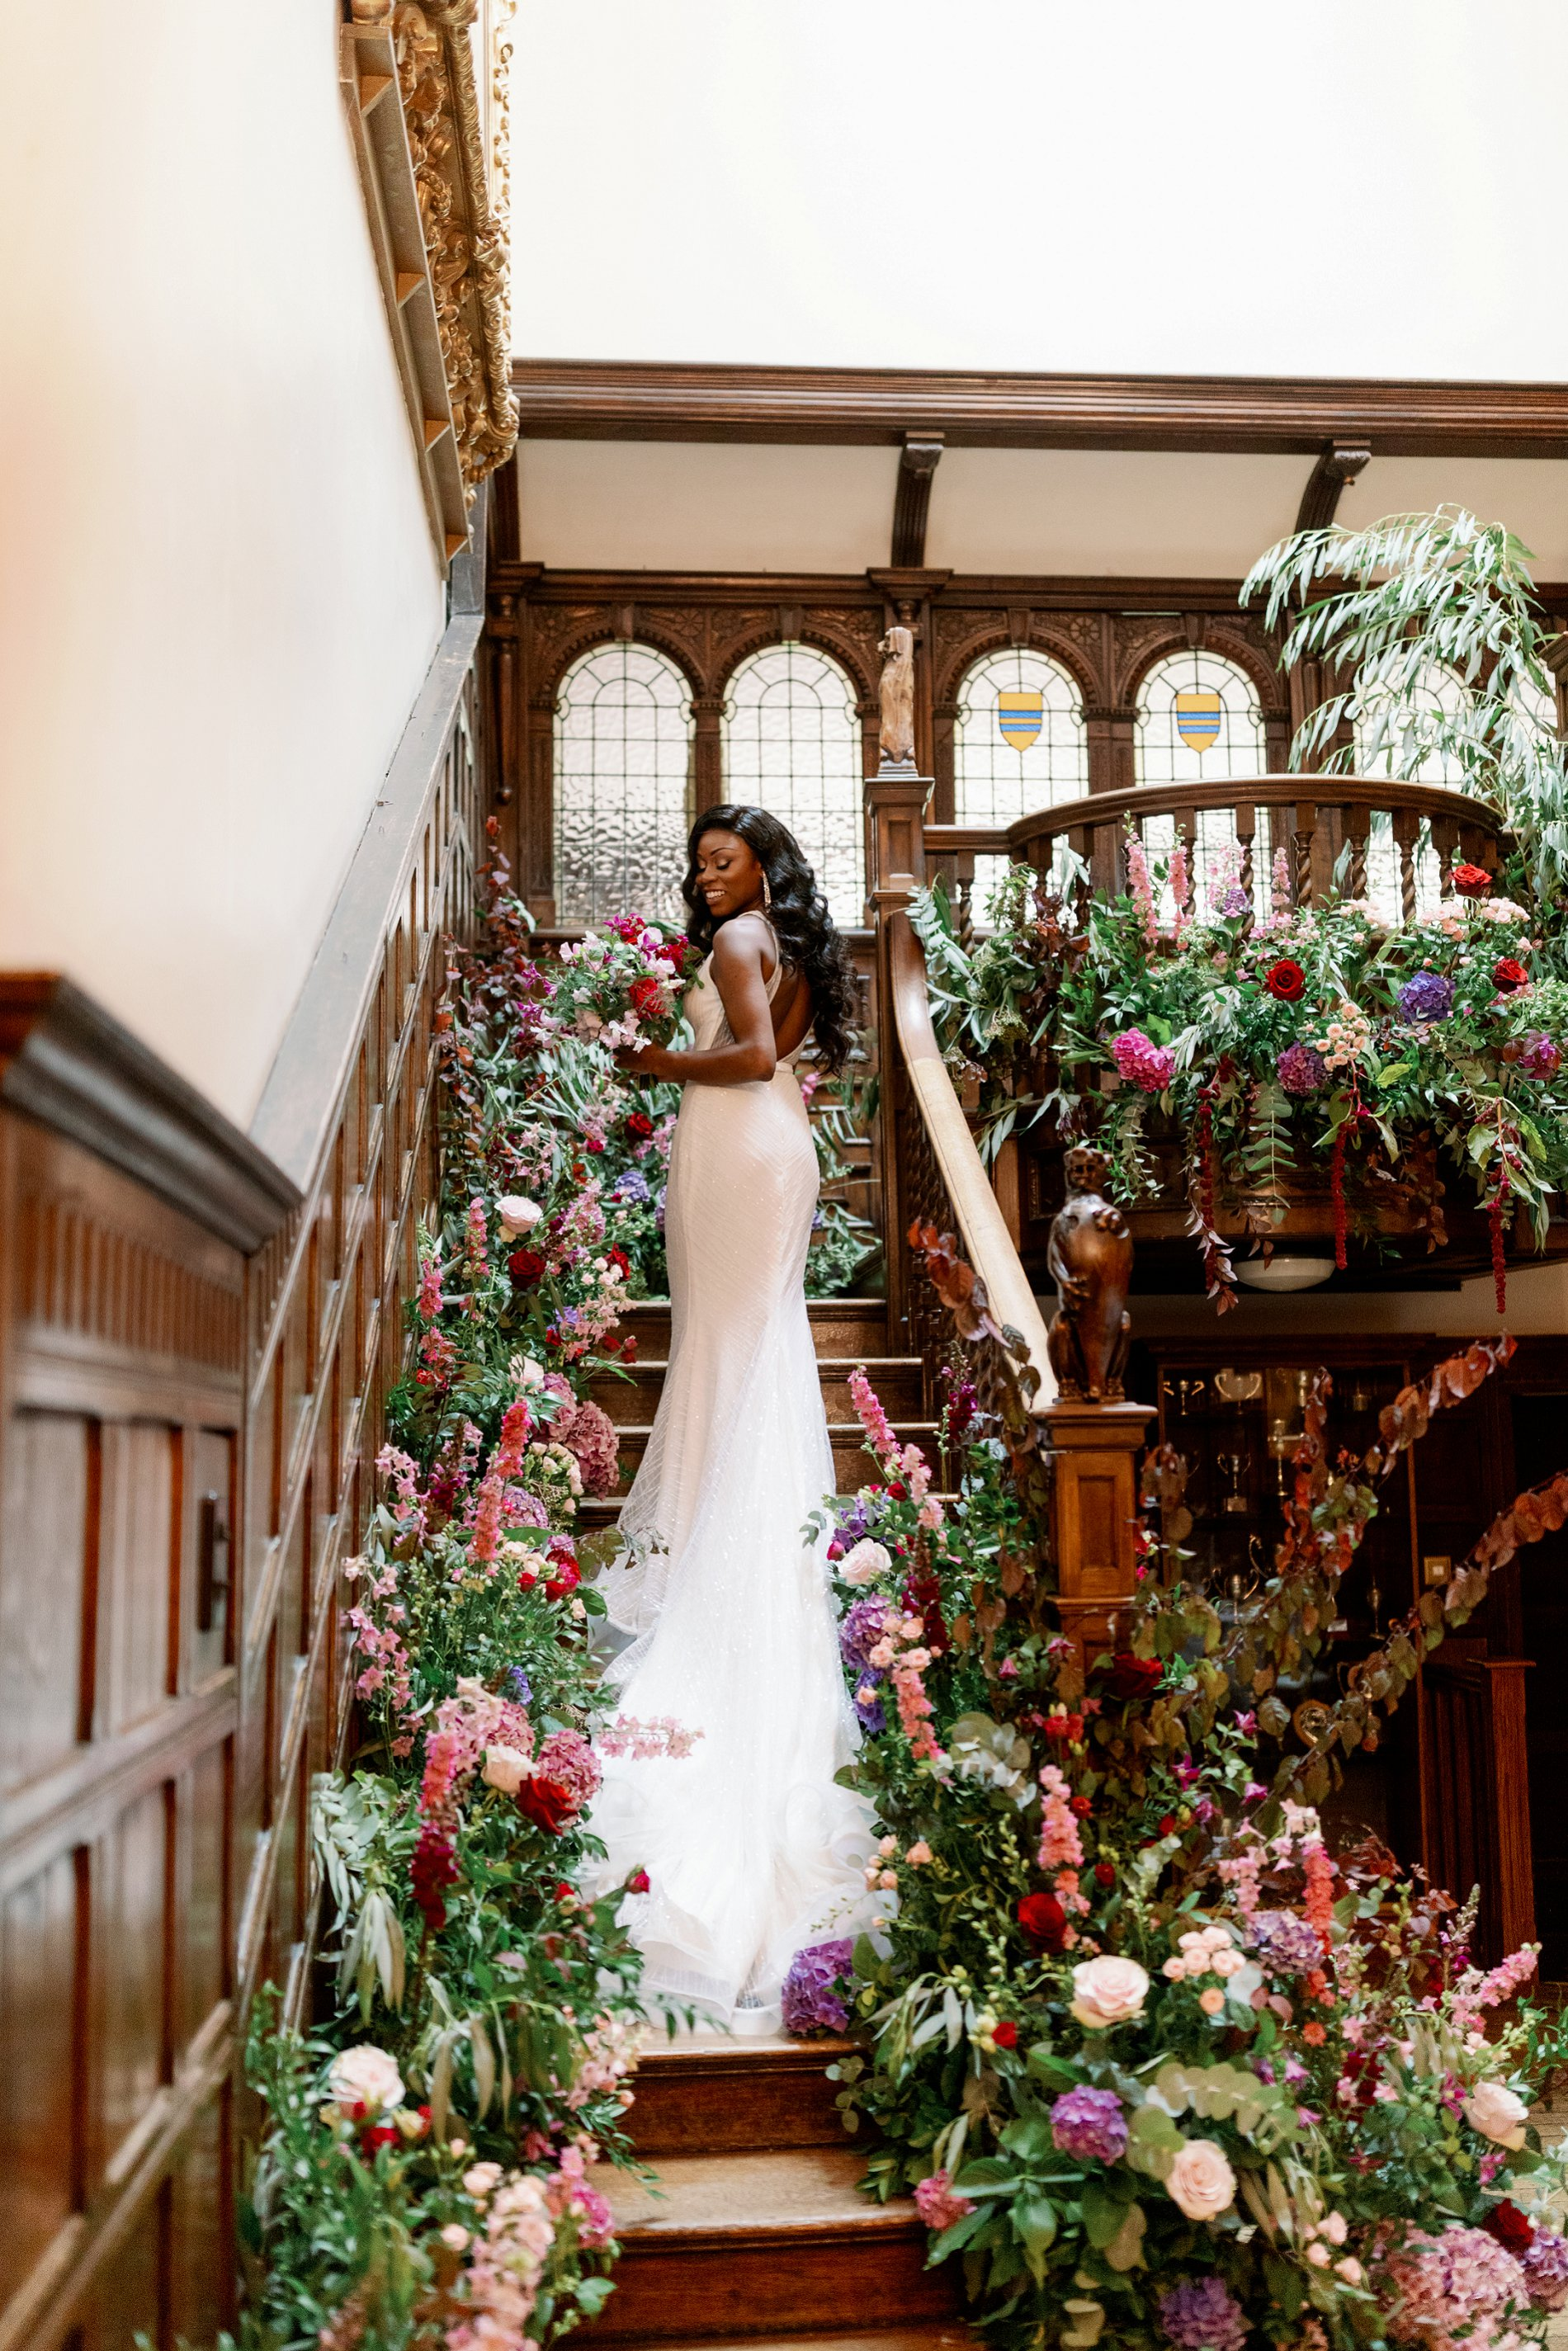 Forever Yours Styled Shoot (c) Camilla J. Hards and Courtney Dee Photography (22)